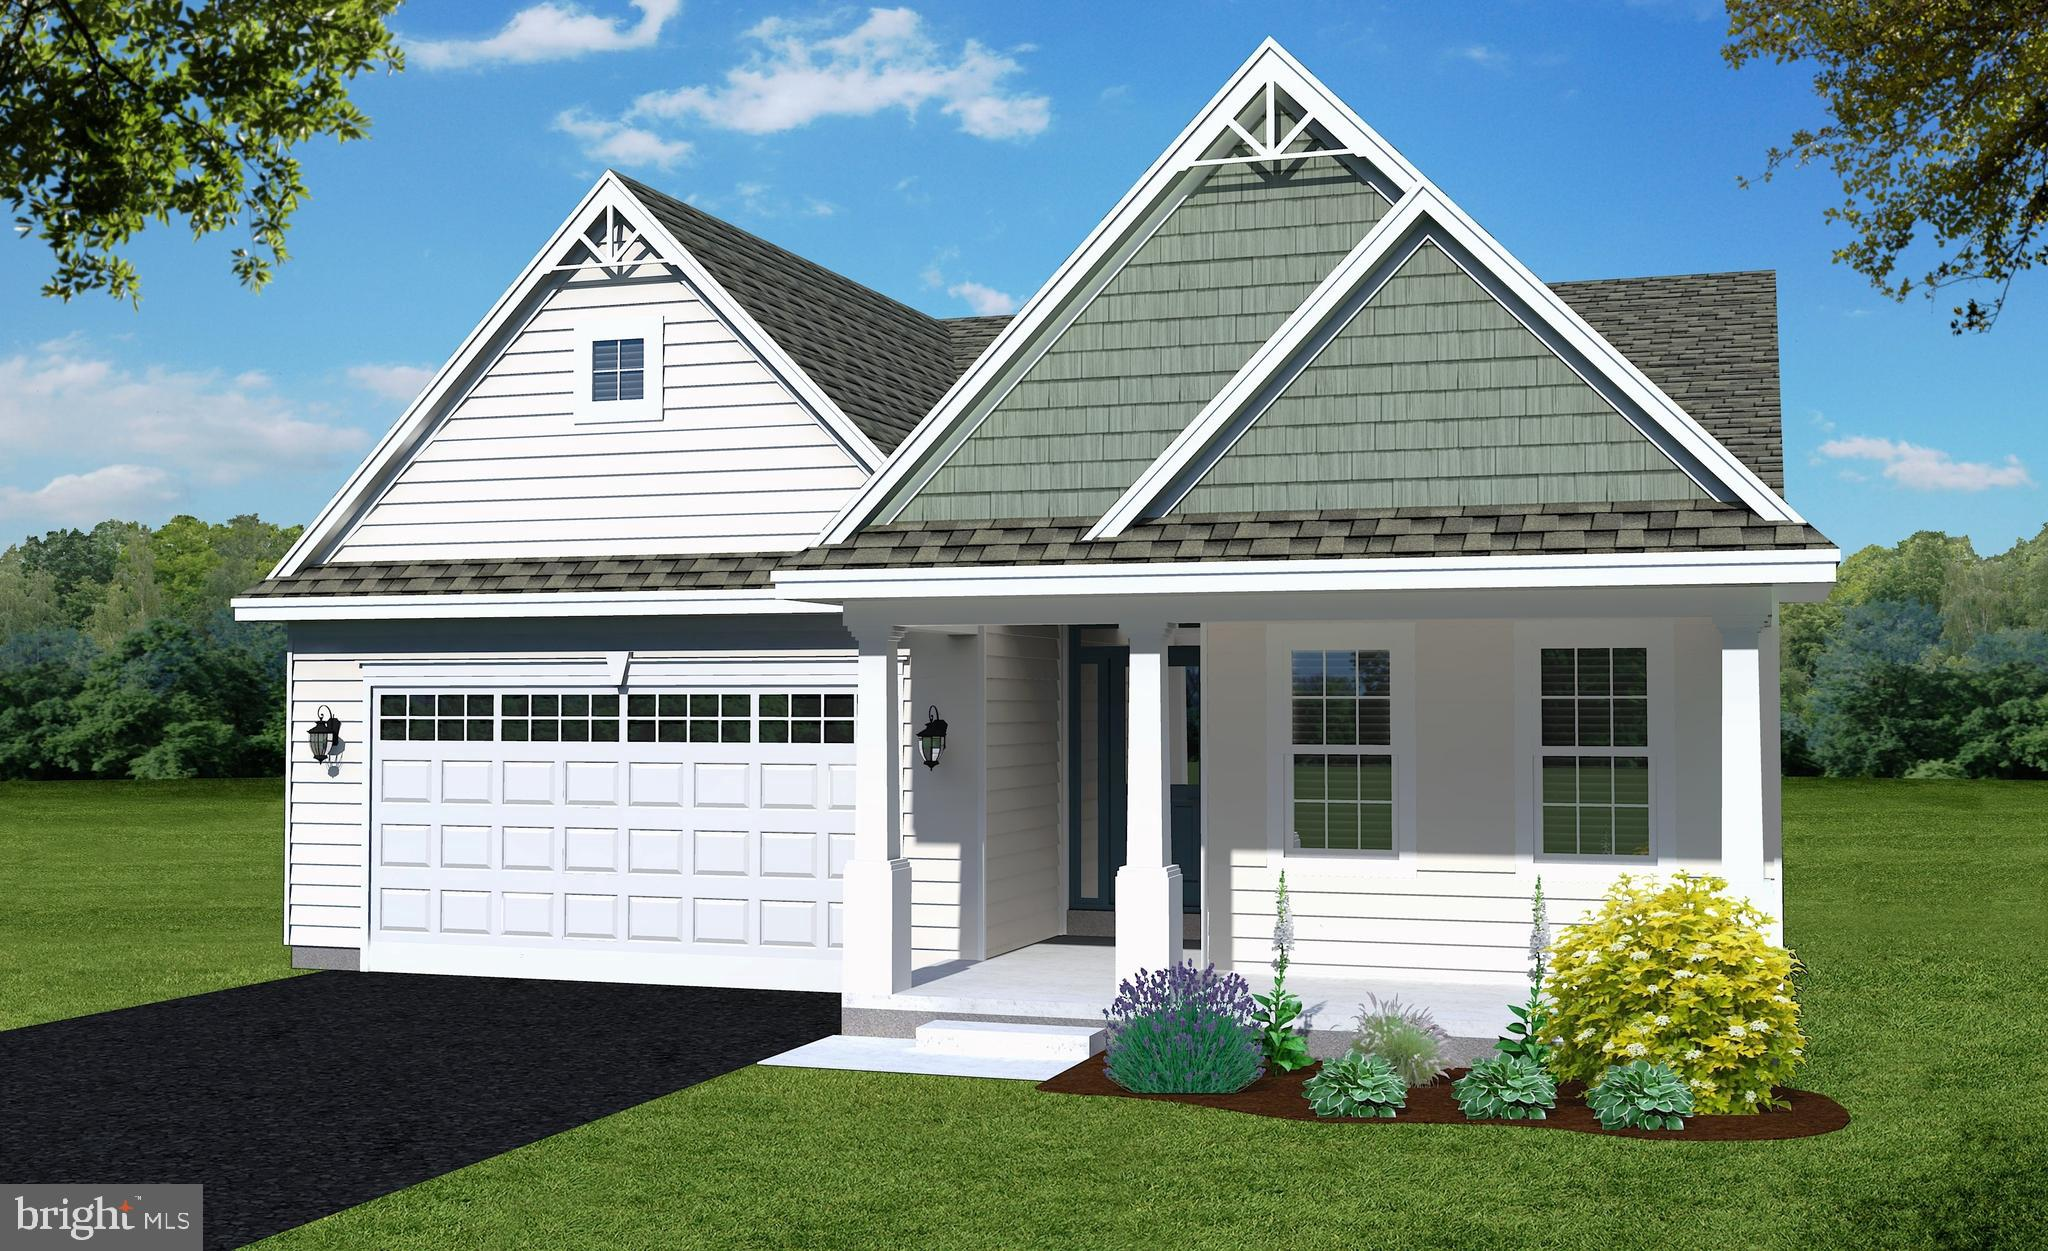 Visit our 55+ community at The Preserve at Robinson Farm. This Pembrooke II is being built just for you! The floor plan has style and simplicity all in one- 2 bedrooms, study, 2 full baths. Once you enter, you will be welcomed by a cozy foyer with luxury vinyl plank flooring. The open kitchen includes bright white cabinets with crown molding, granite accented with stainless steel appliances, large island with a sink built in looking into your family room. The cafe area and a family room allows you space to entertain from the glow of the fireplace.  The large owners' bedroom with en-suite tiled bath and shower, and full-sized laundry round out this beautiful home. Let's not forget the full unfinished basement with rough in plumbing to add a full bathroom in the future. This home offers all the space you need with lawn service included! Clubhouse included! The builder has a tremendous reputation for excellence and 40+ years of building experience with a proven track record of success.  This home is under construction, photos may be of a similar or decorated model home.